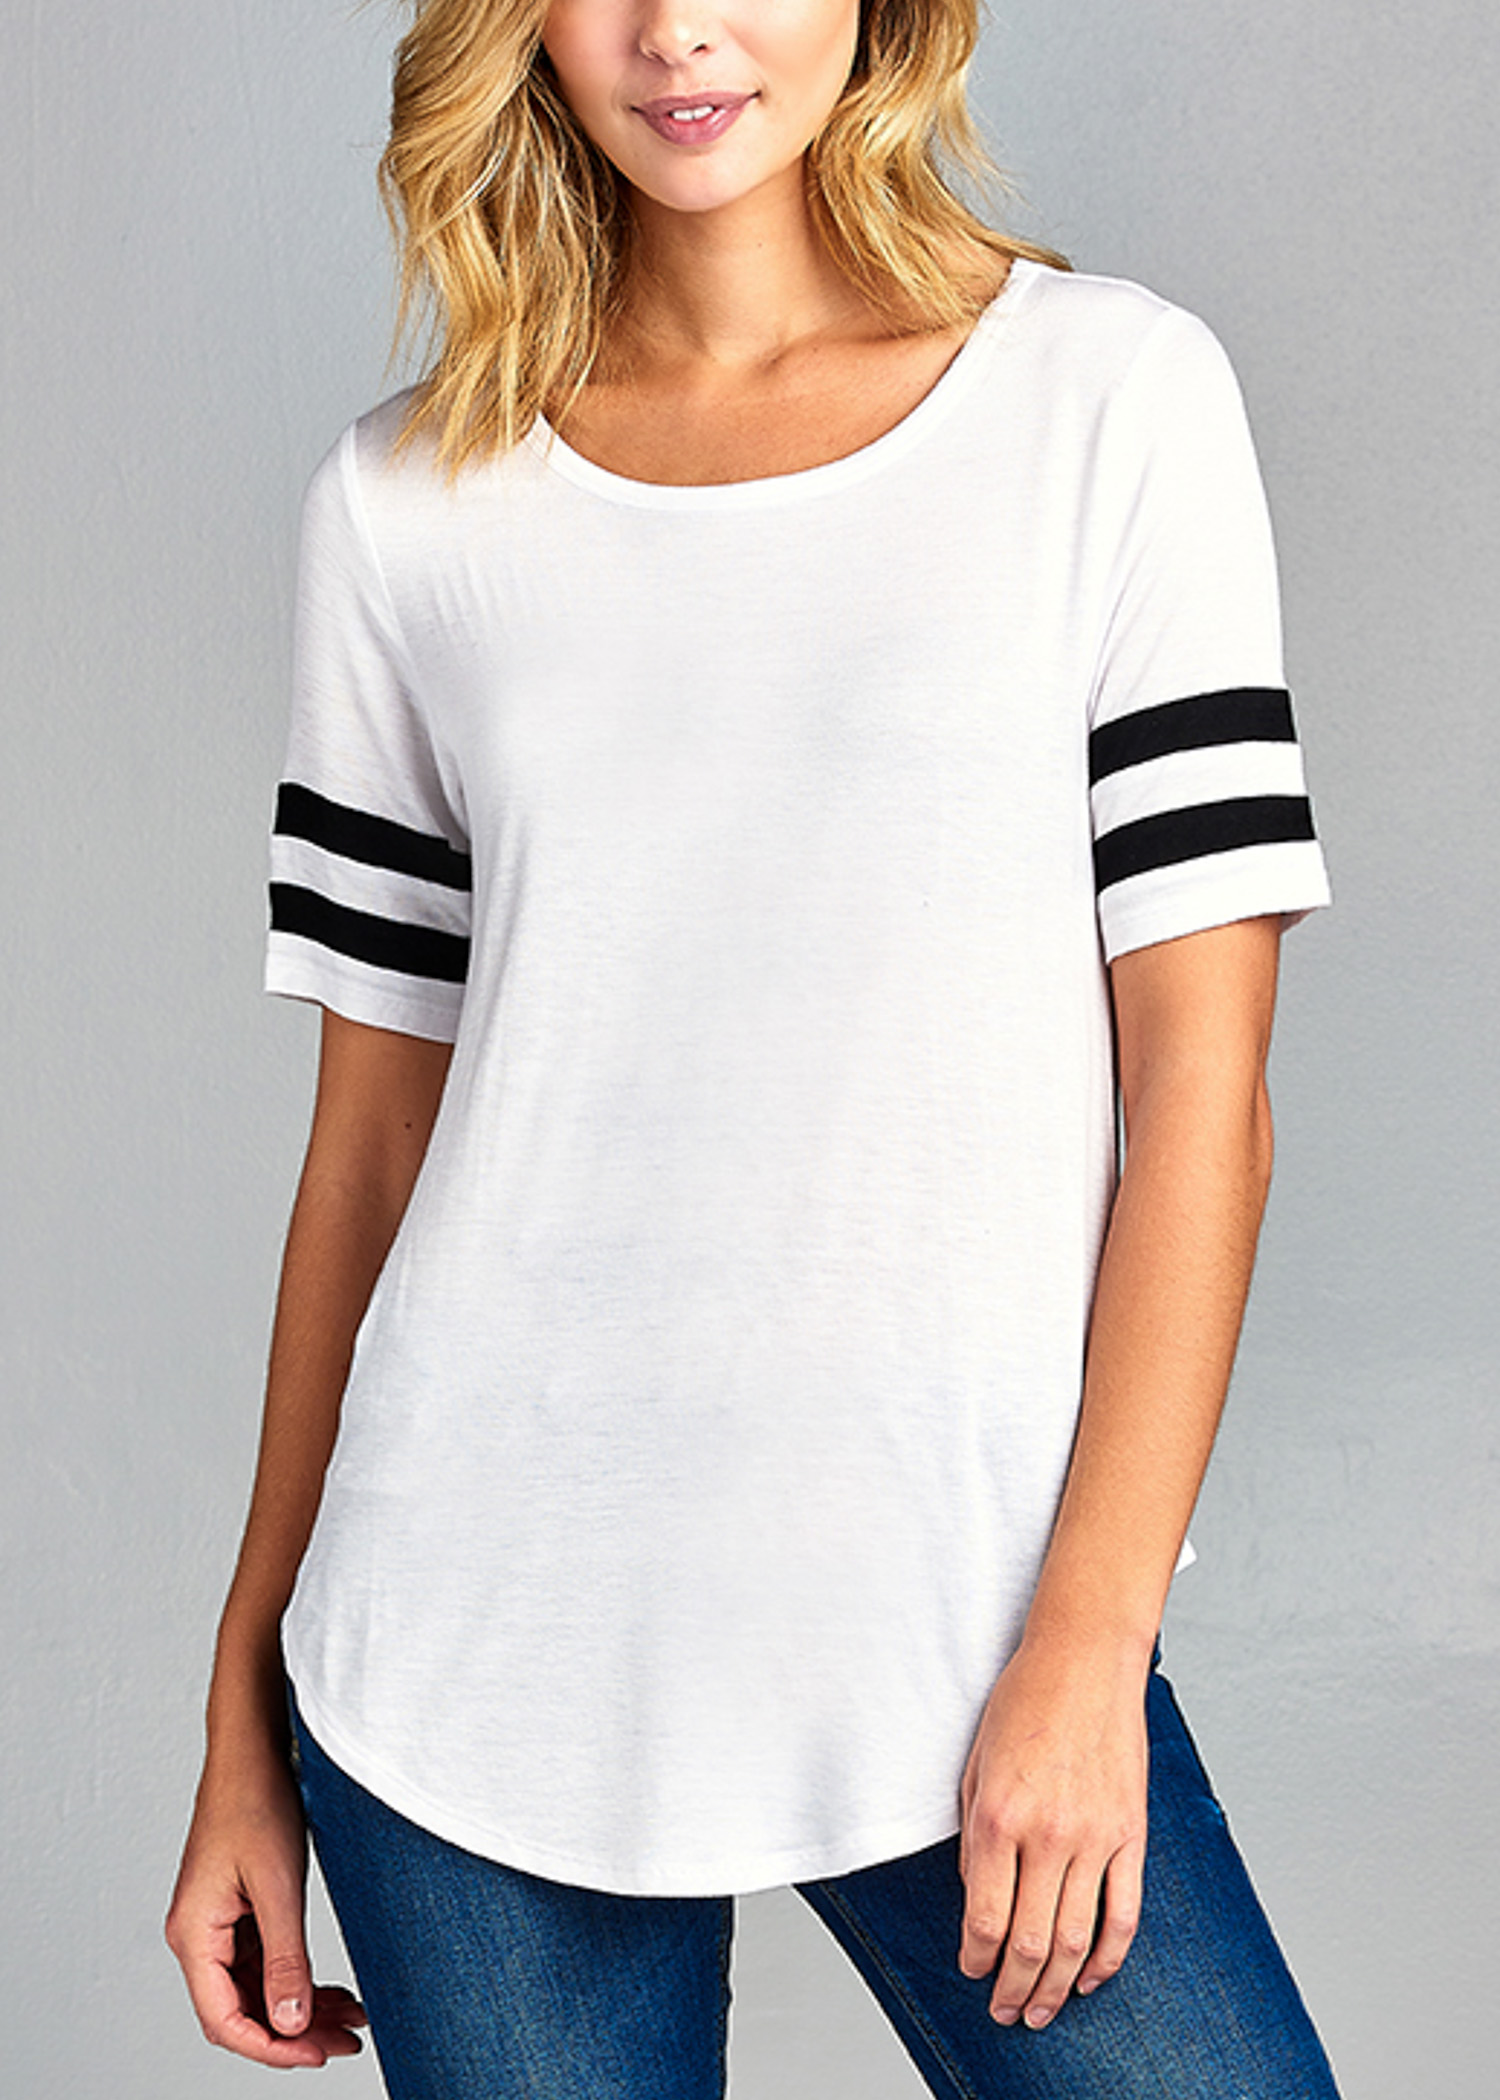 Womens Juniors Casual Basic Must Have Stretchy Rayon Spandex Short Sleeve Scoop Neck White Tee 40126V